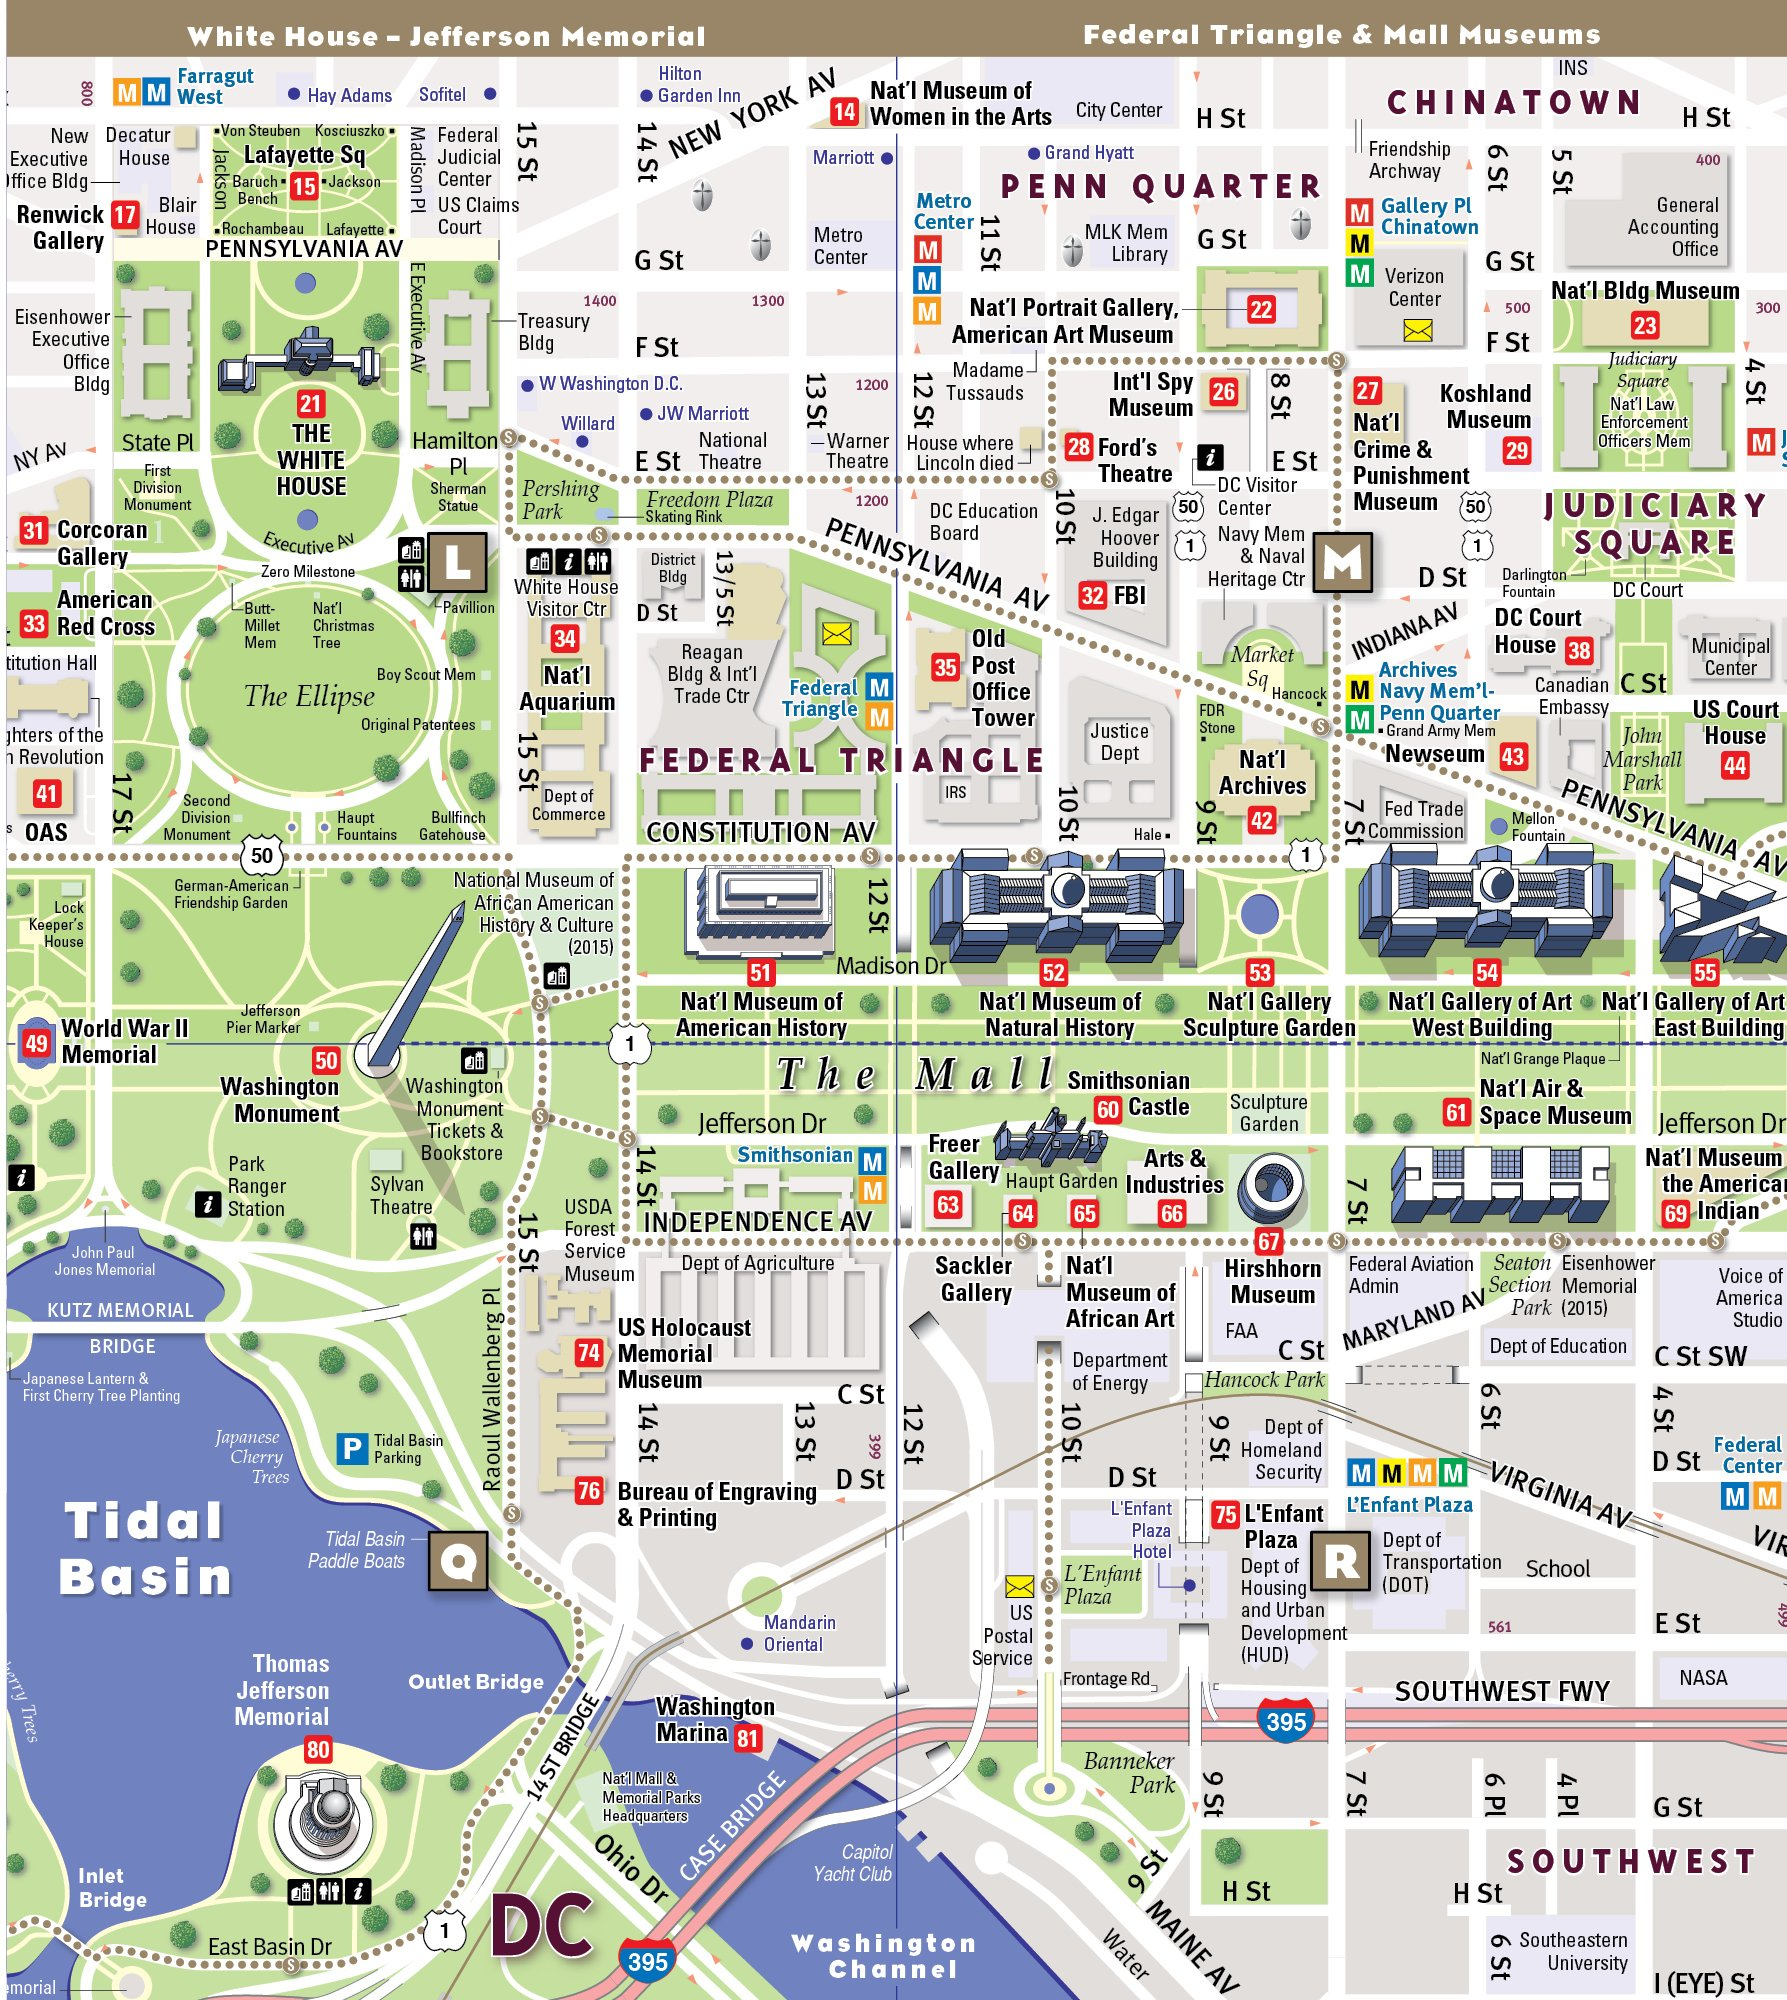 StreetSmart Washington DC Map by VanDam - Laminated pocket City ...